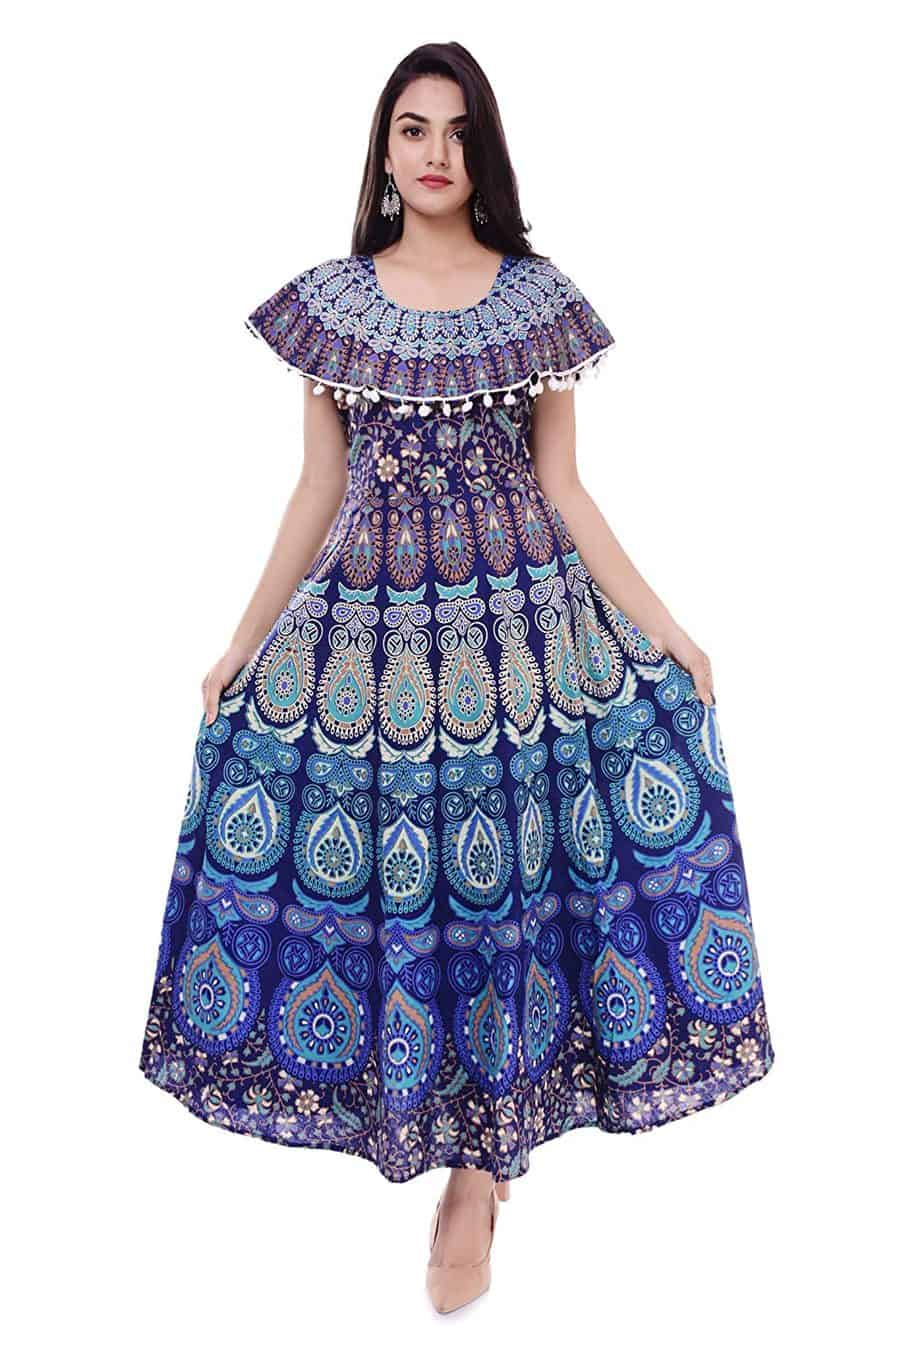 👗 7 Best 14 to 18 Year Girl Dresses Online 2021